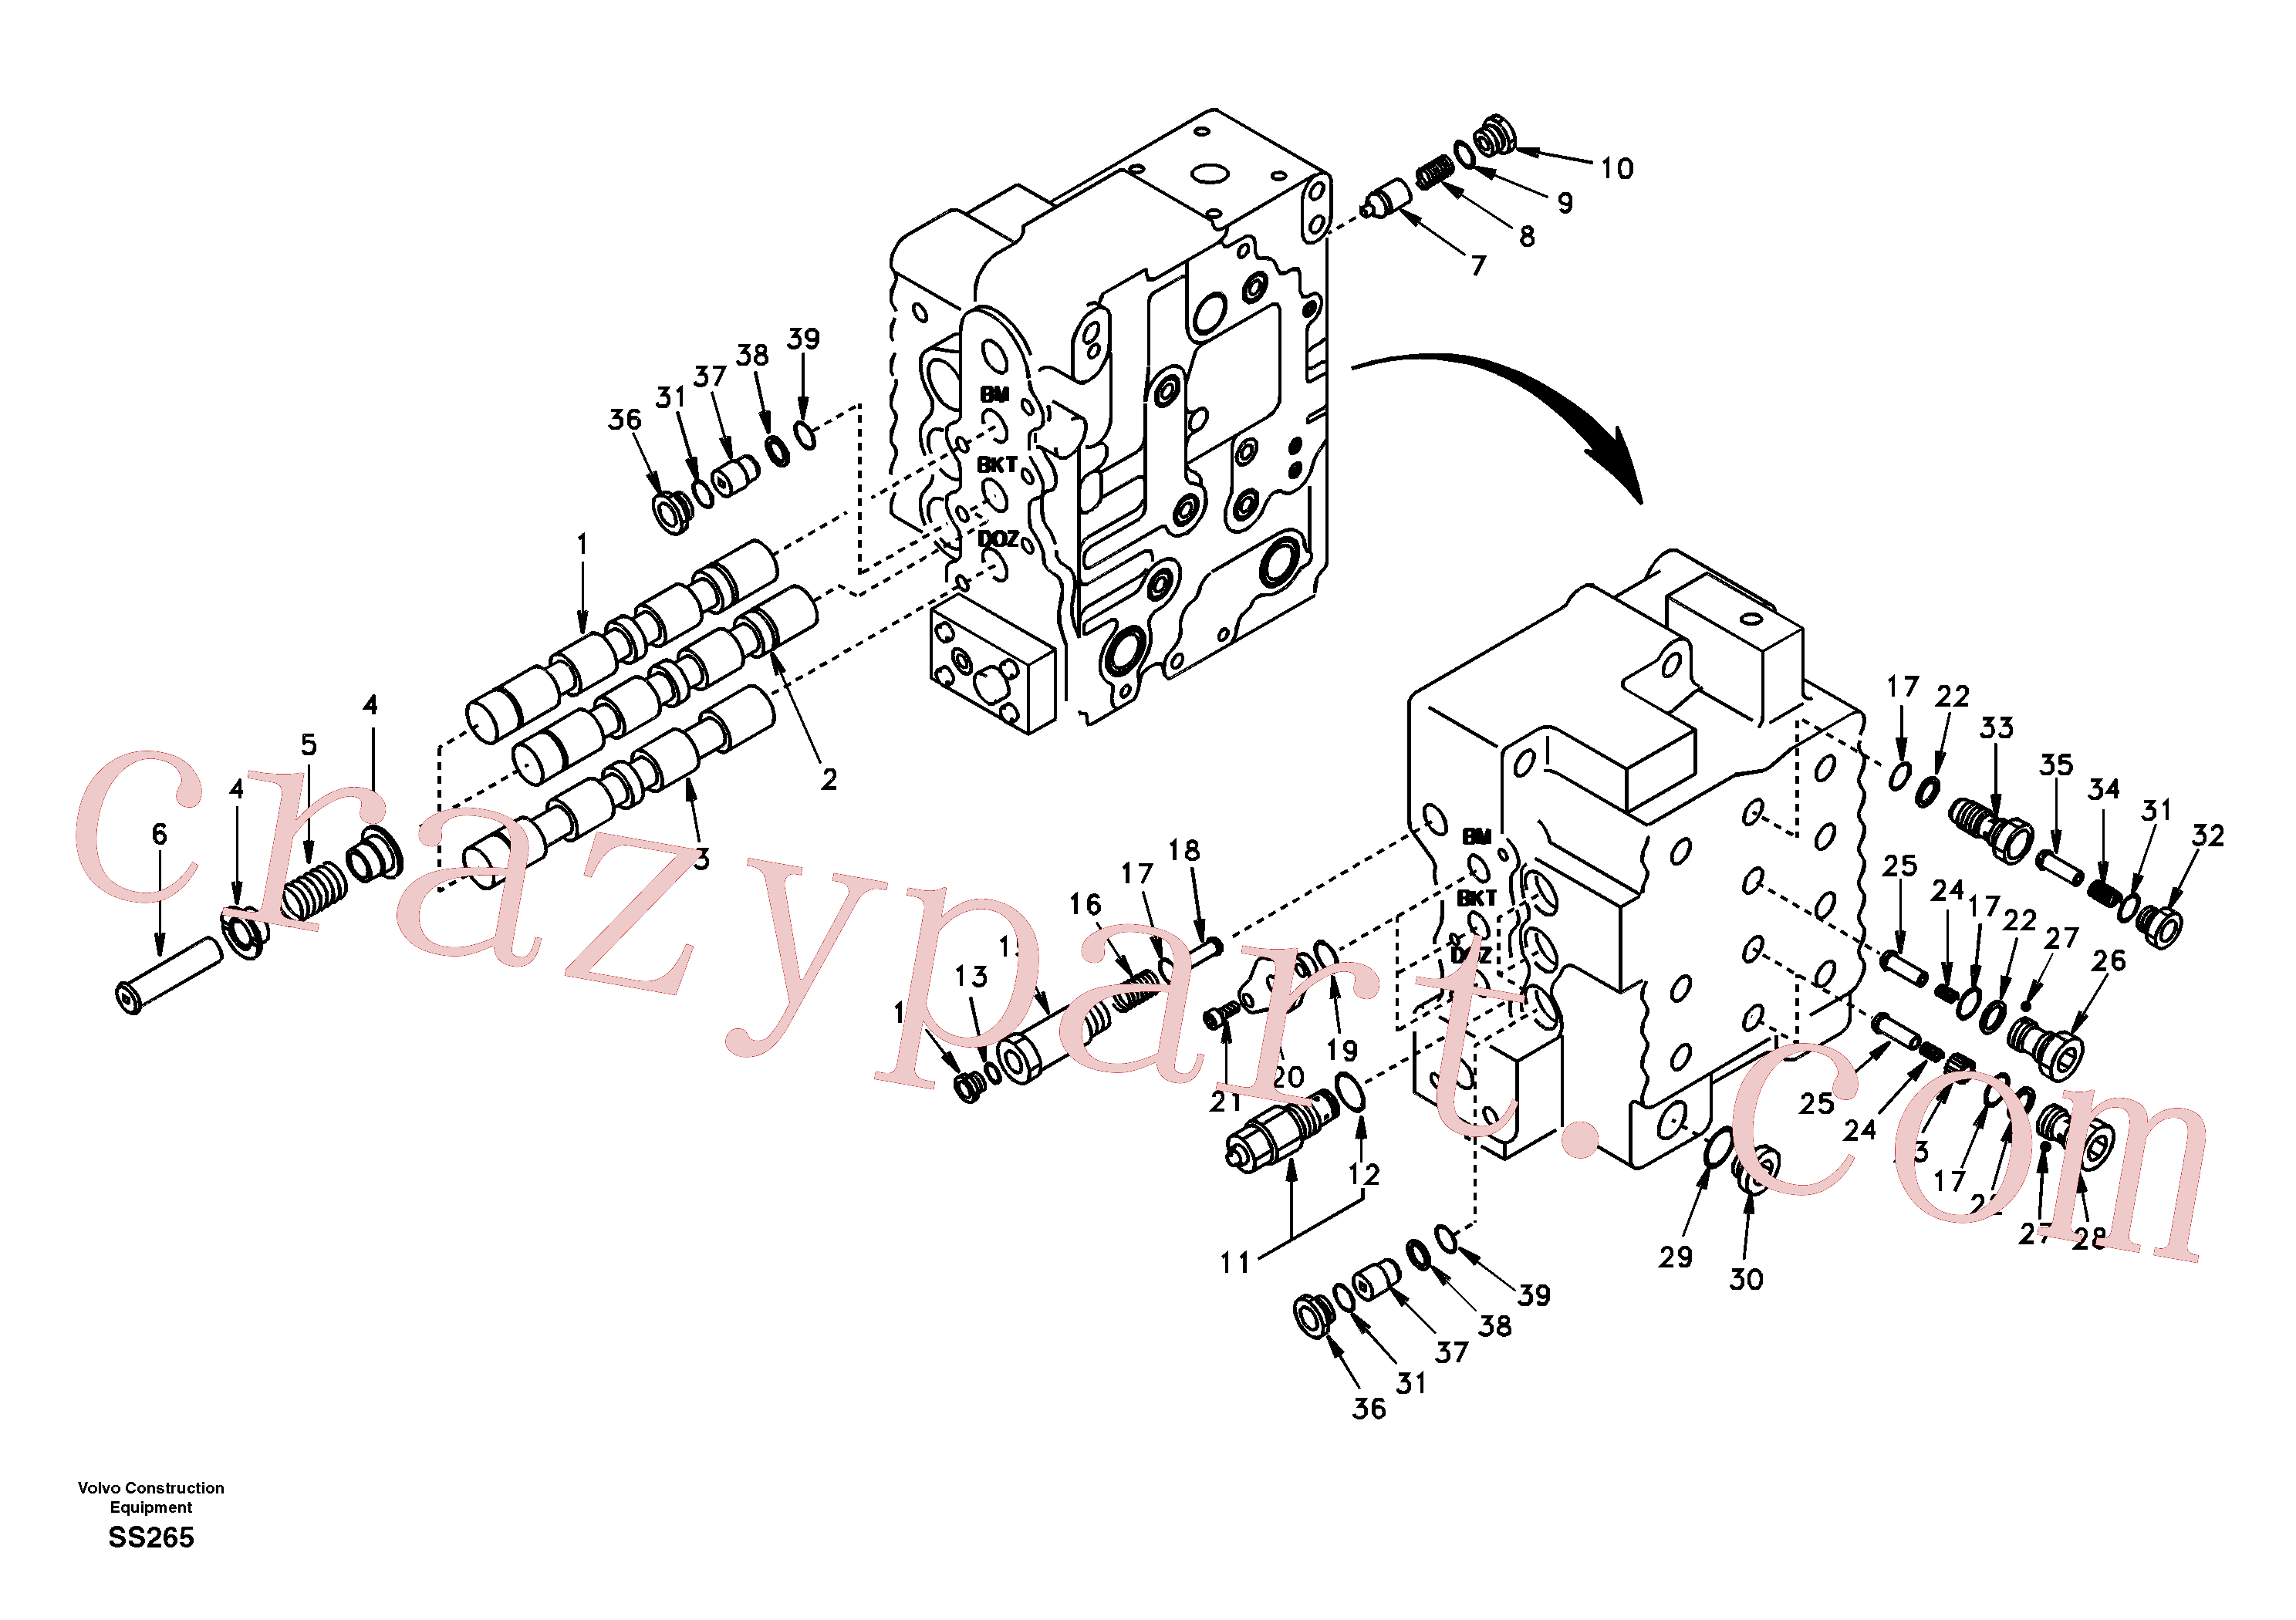 SA9512-01011 for Volvo Main control valve, boom and bucket and travel Rh(SS265 assembly)